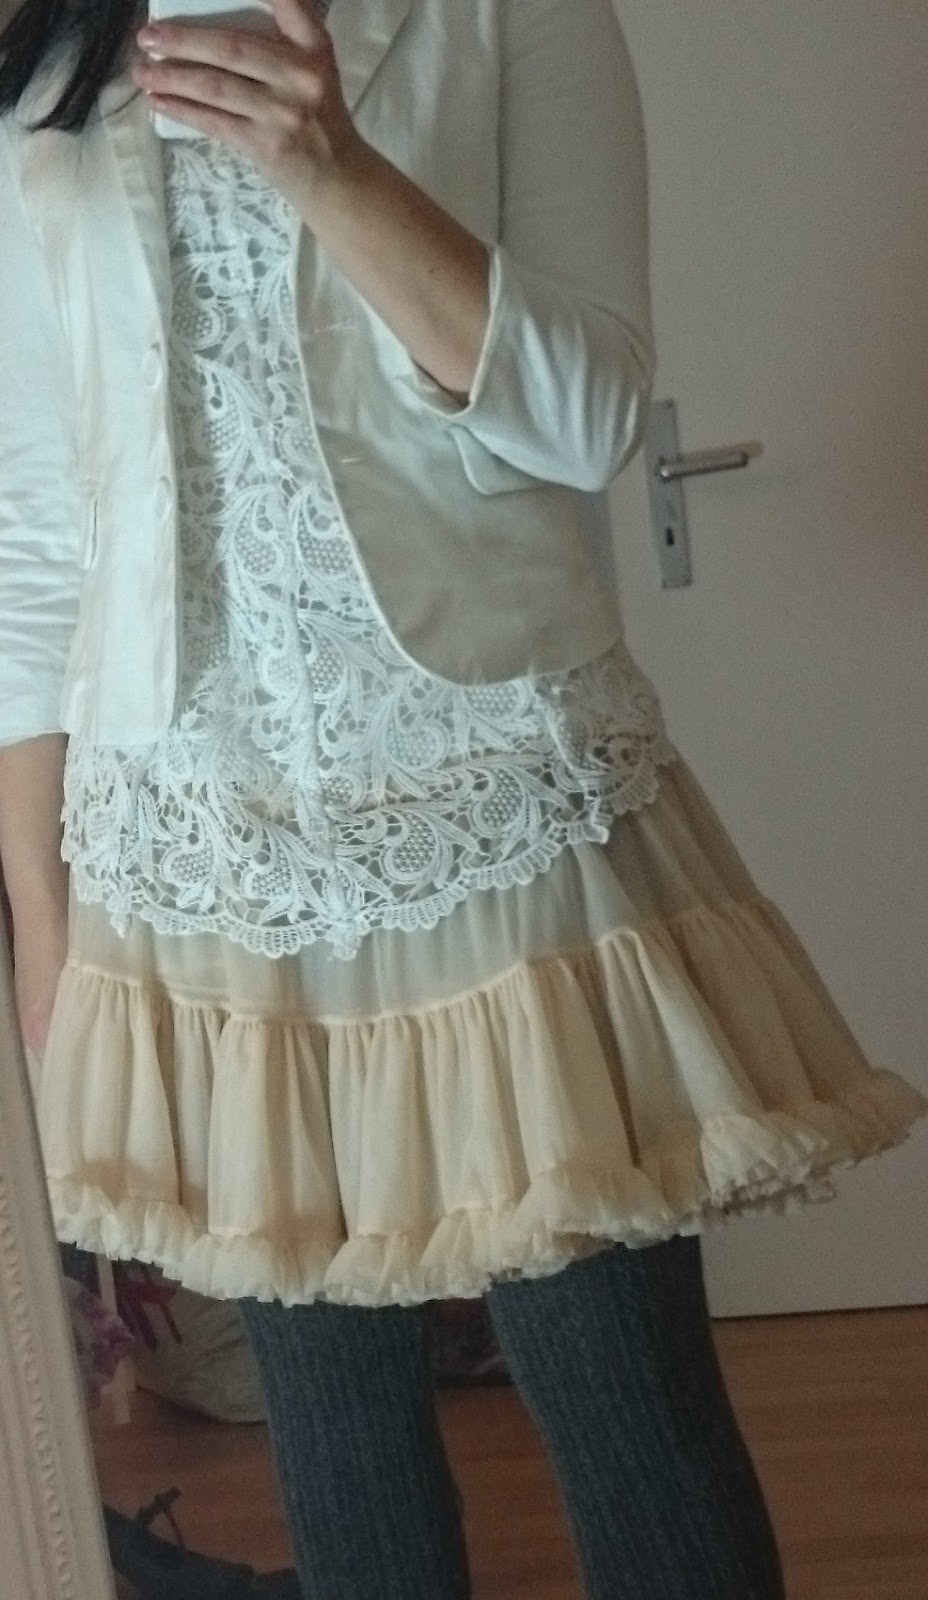 Petticoat Outfit White Lace